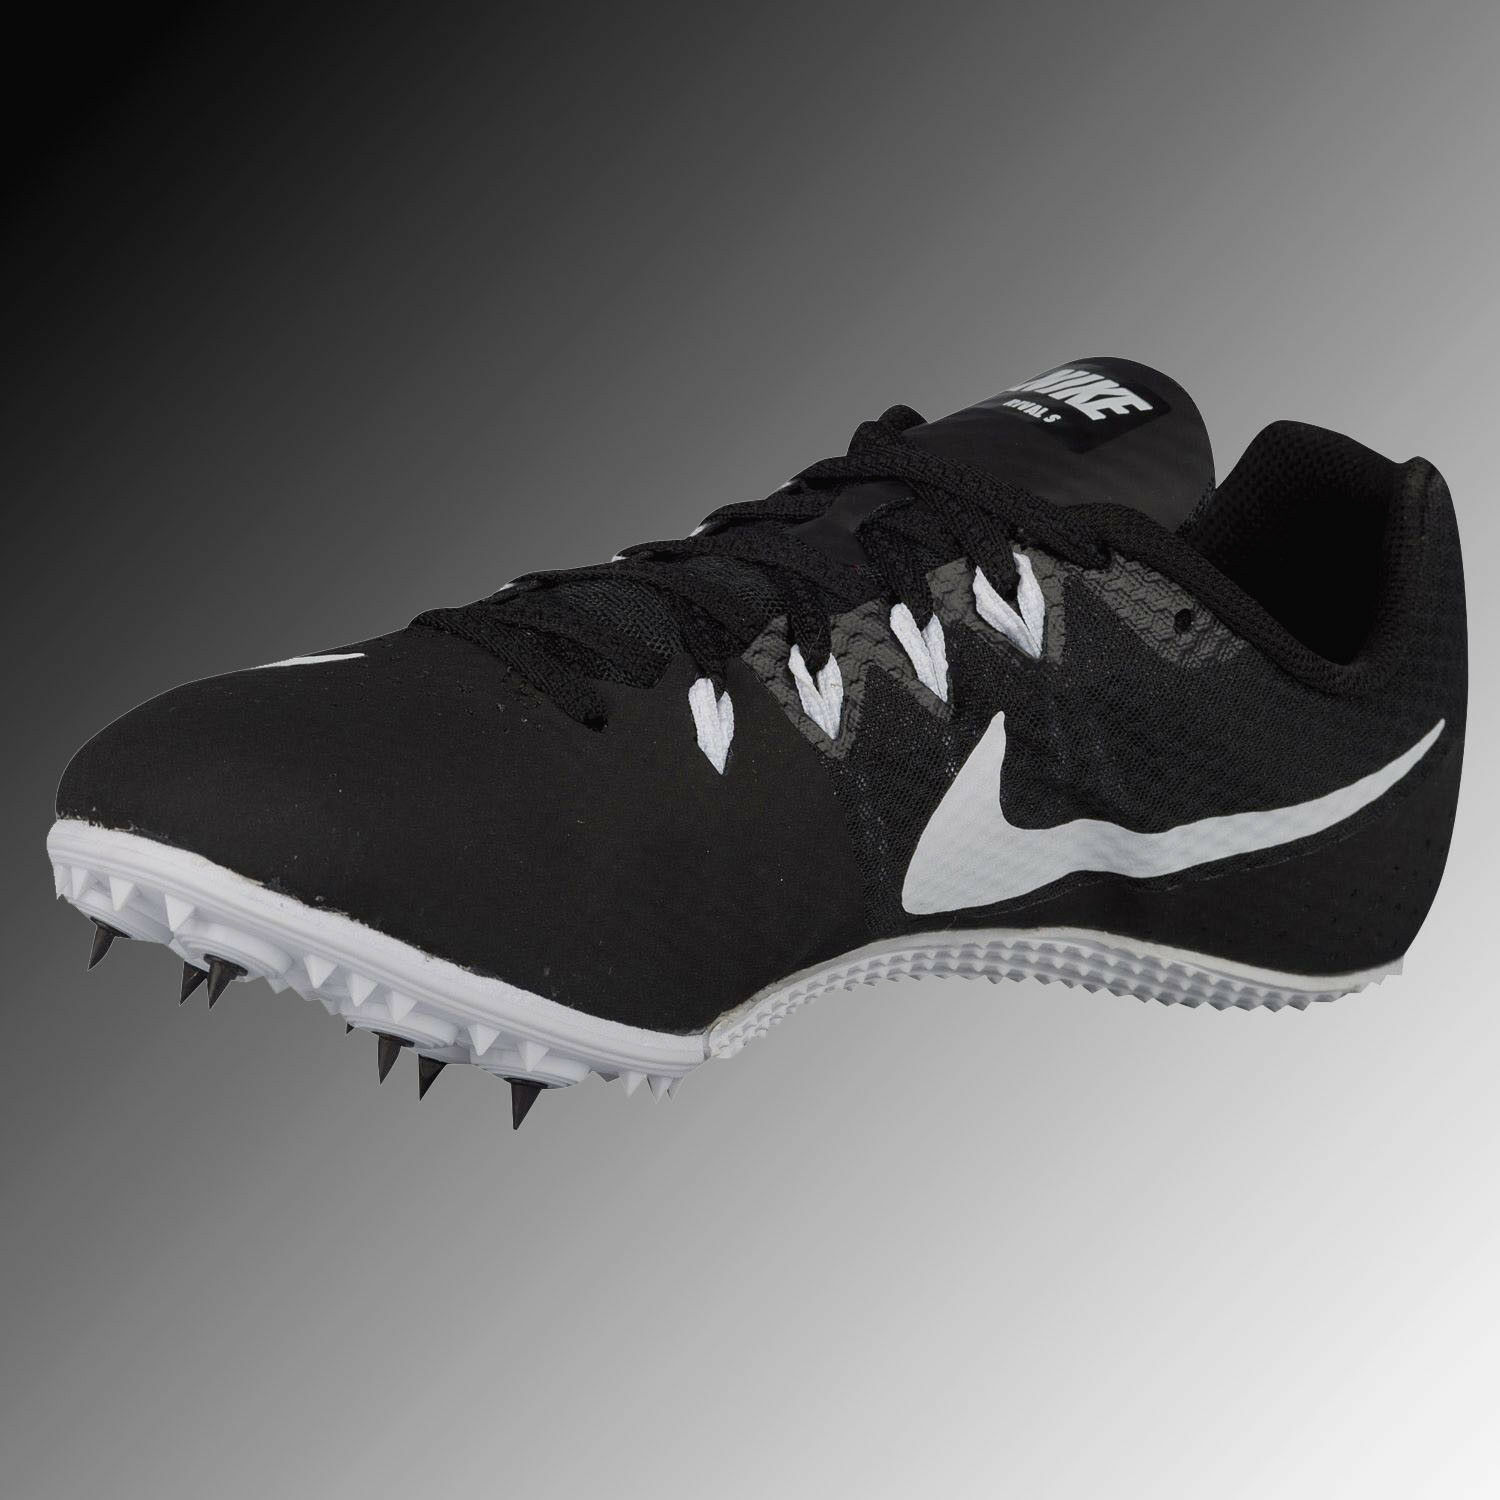 Nike Zoom rival 806554-001 s 8 Track spikes 806554-001 rival hombres cómodos 5f0c8c